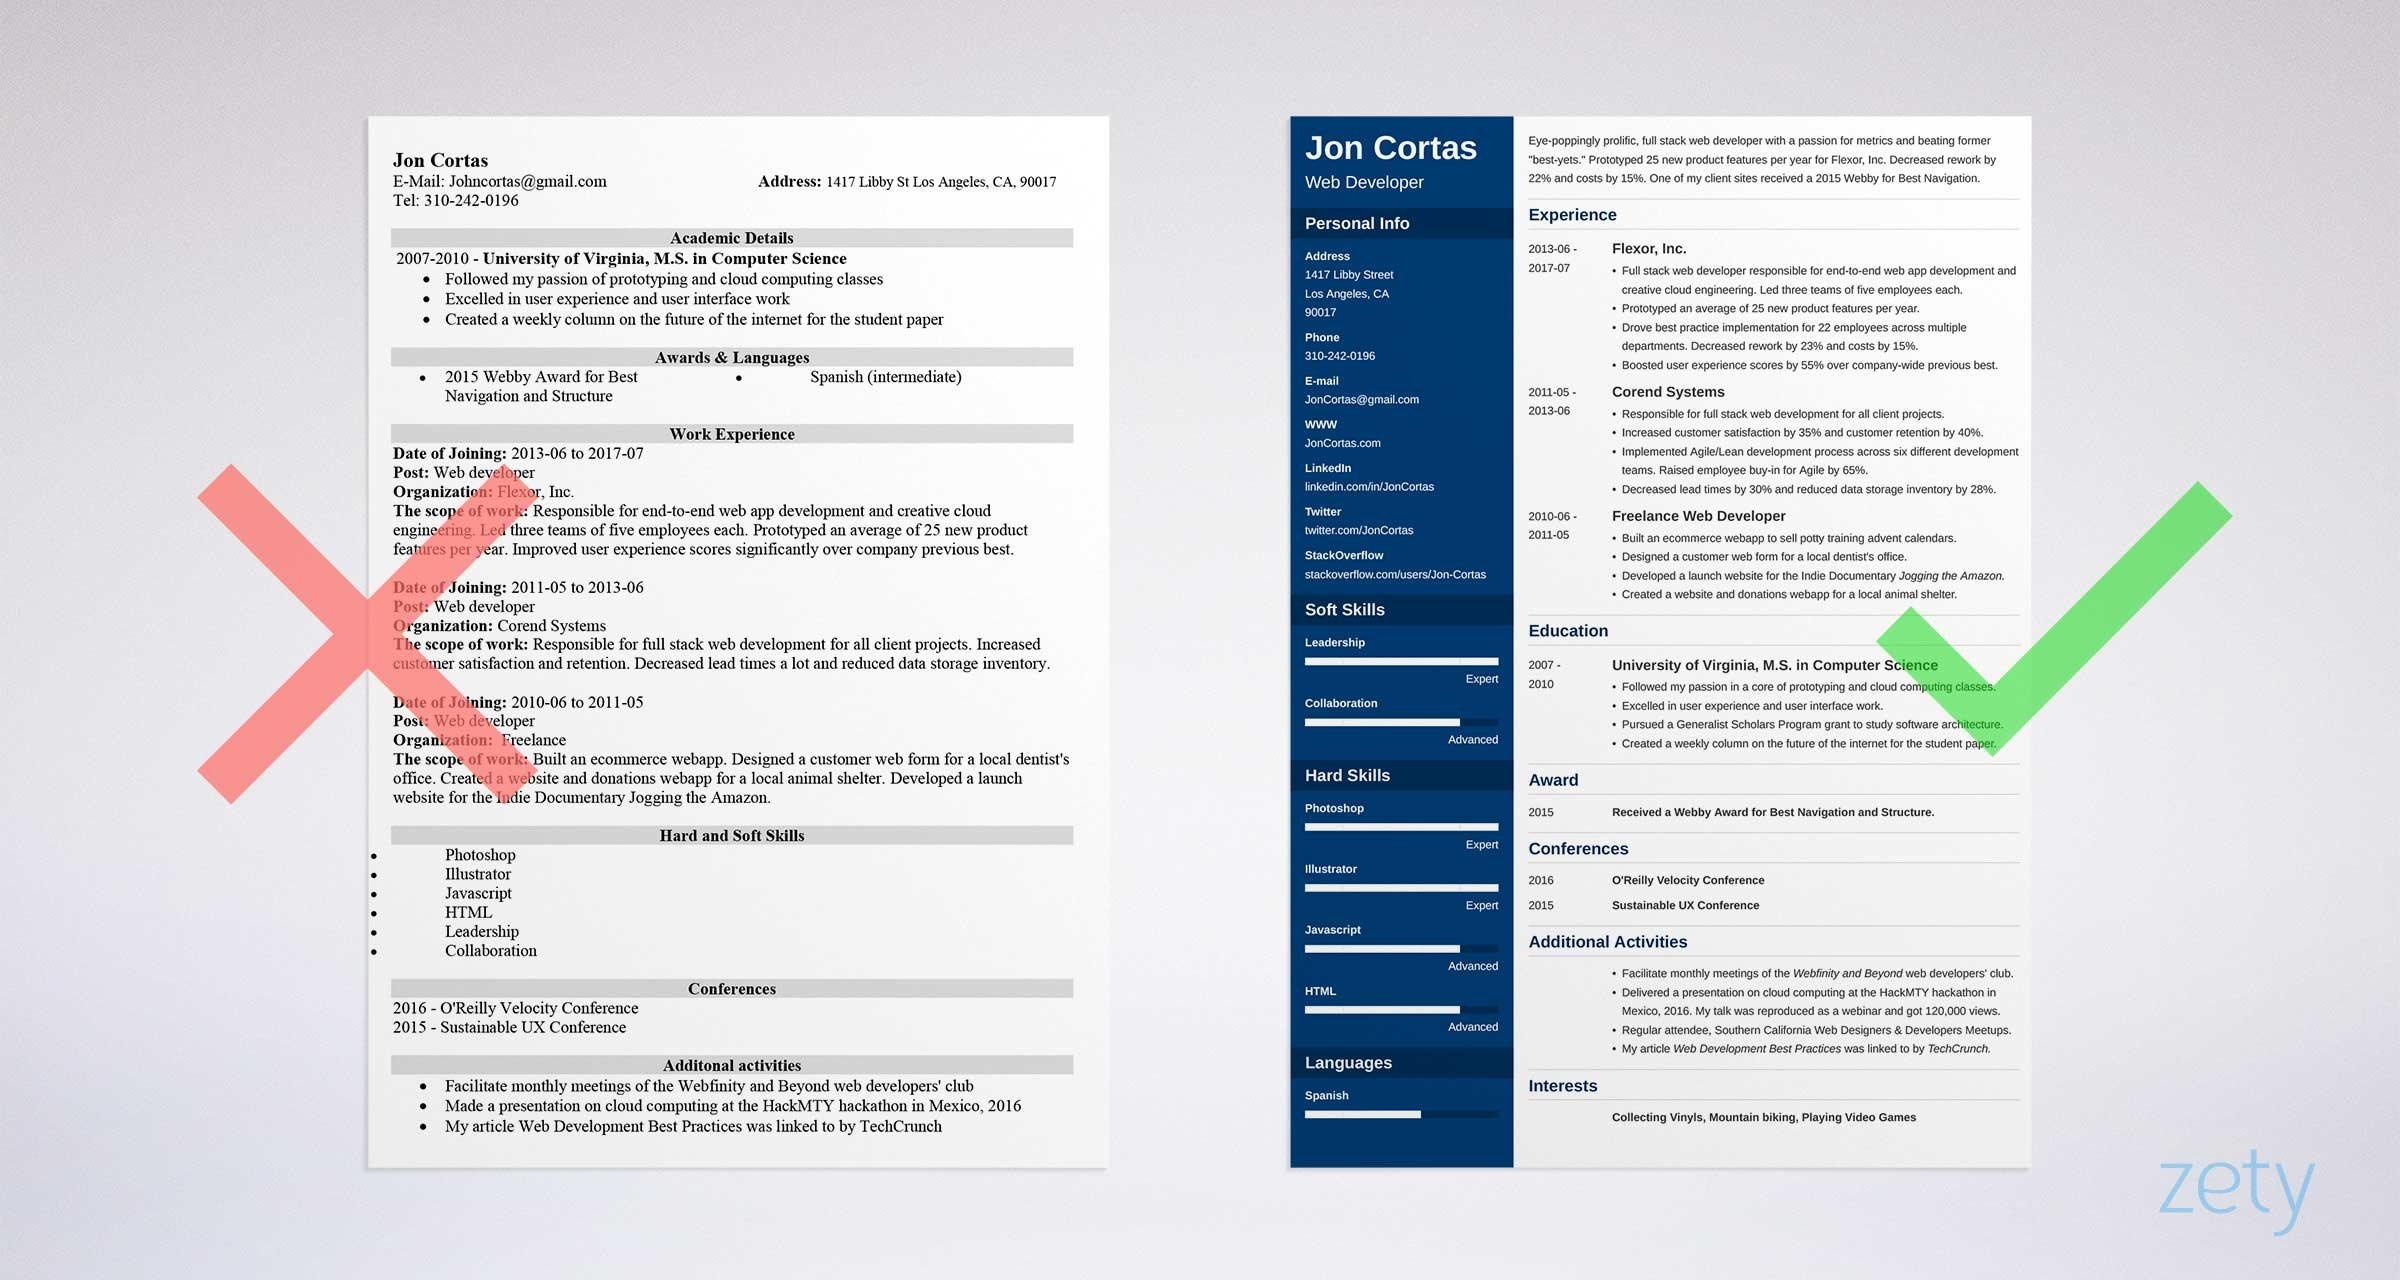 Resume Templates Word: 15+ Free CV\/Resume Formats to Download